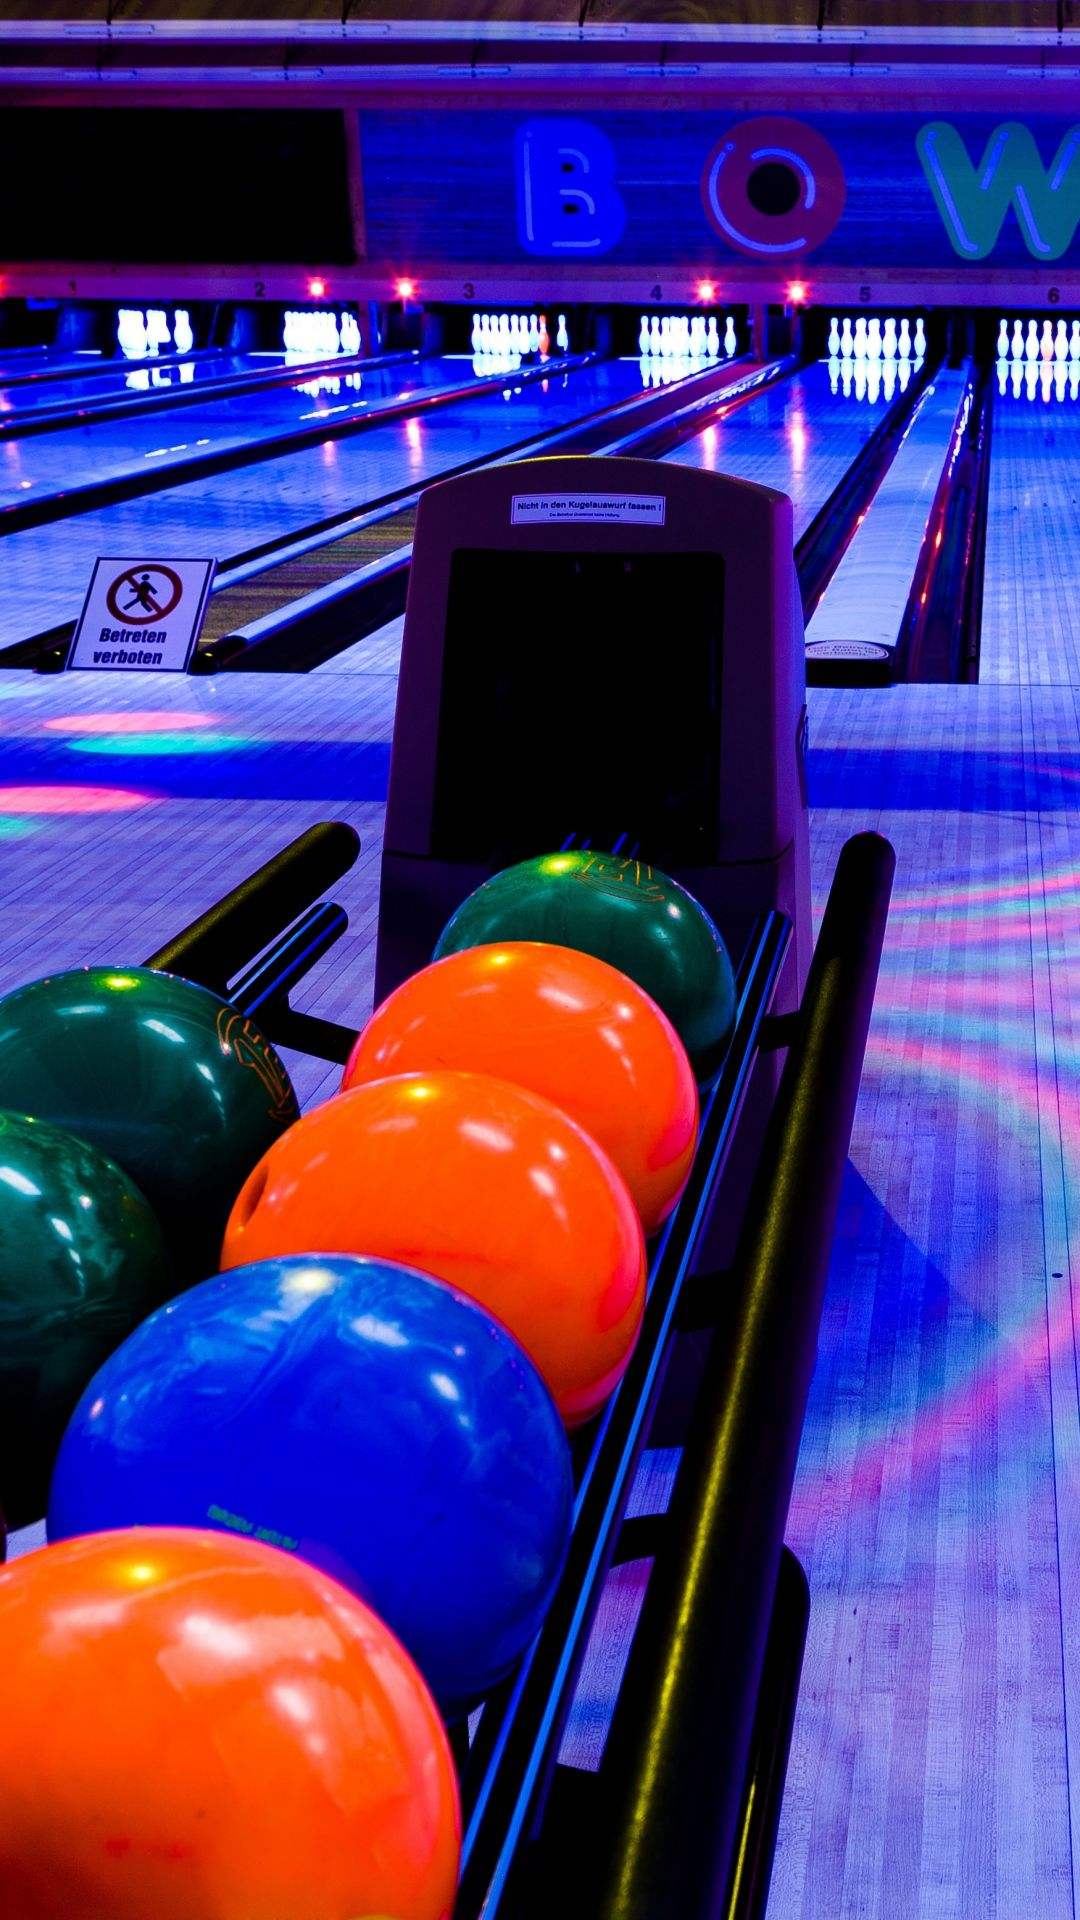 Club Exercise Bowling Balls Iphone 6 Wallpaper Bowling Snap Photography Infinity Wallpaper